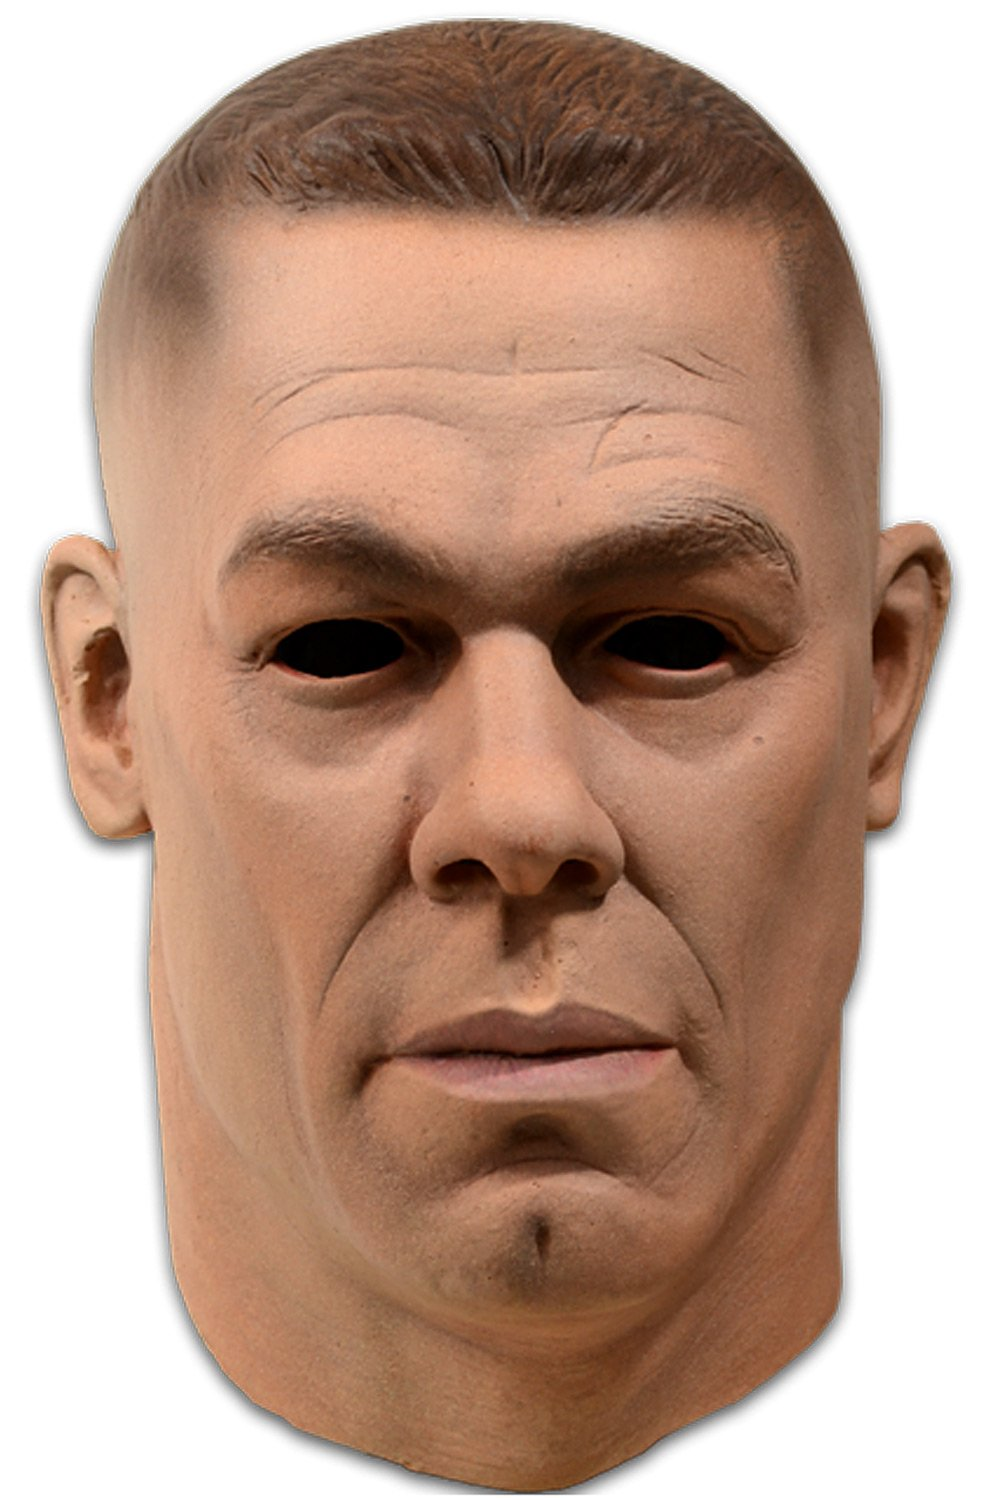 Trick or Treat John Cena Mask-Standard by Trick or Treat